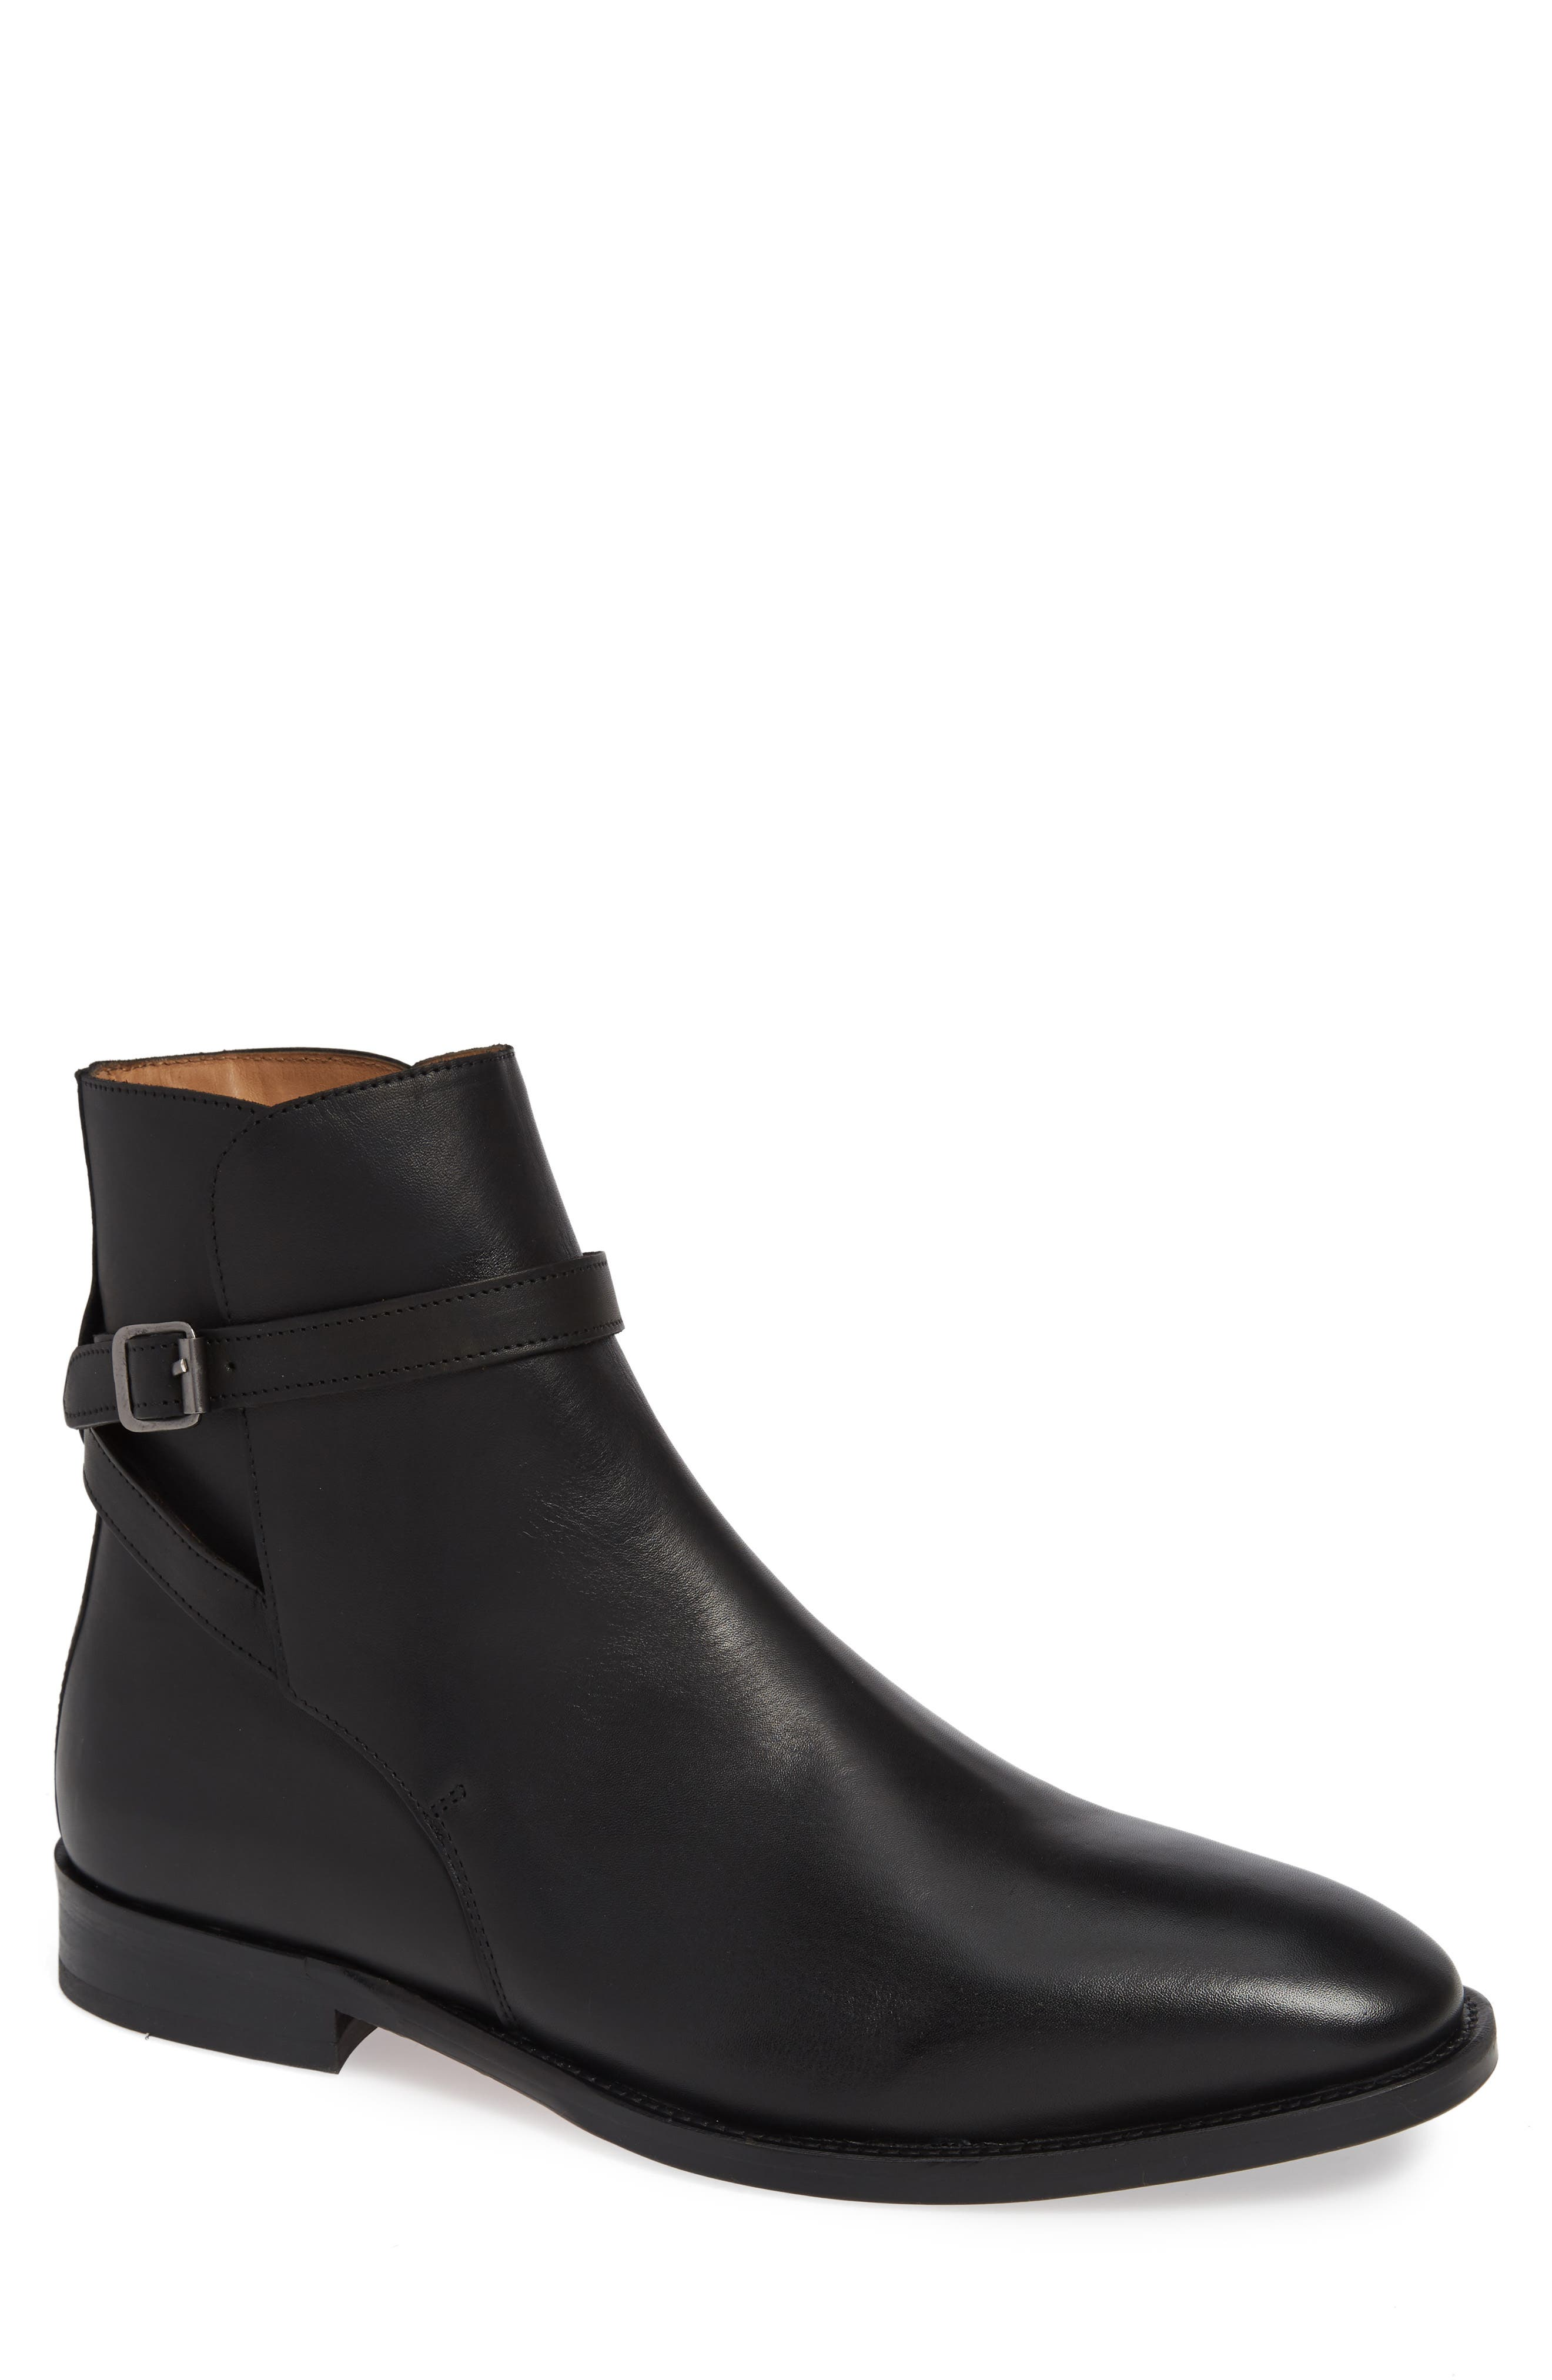 Hop Buckle Strap Boot,                             Main thumbnail 1, color,                             BLACK LEATHER